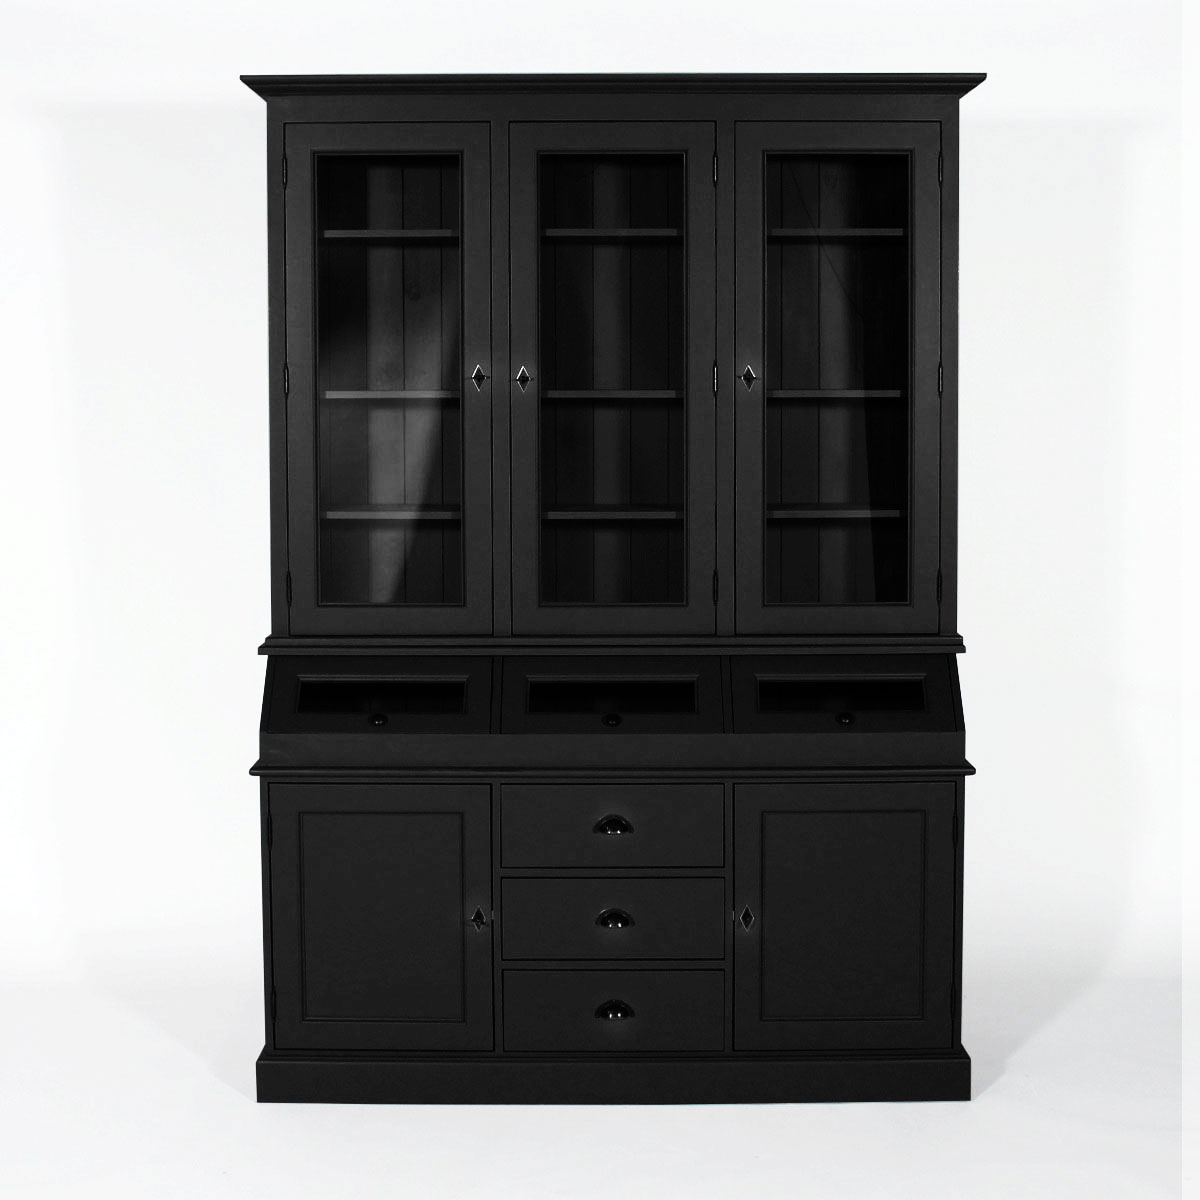 j 39 ose le noir dans ma cuisine type industriel le blog d co de made in meubles. Black Bedroom Furniture Sets. Home Design Ideas